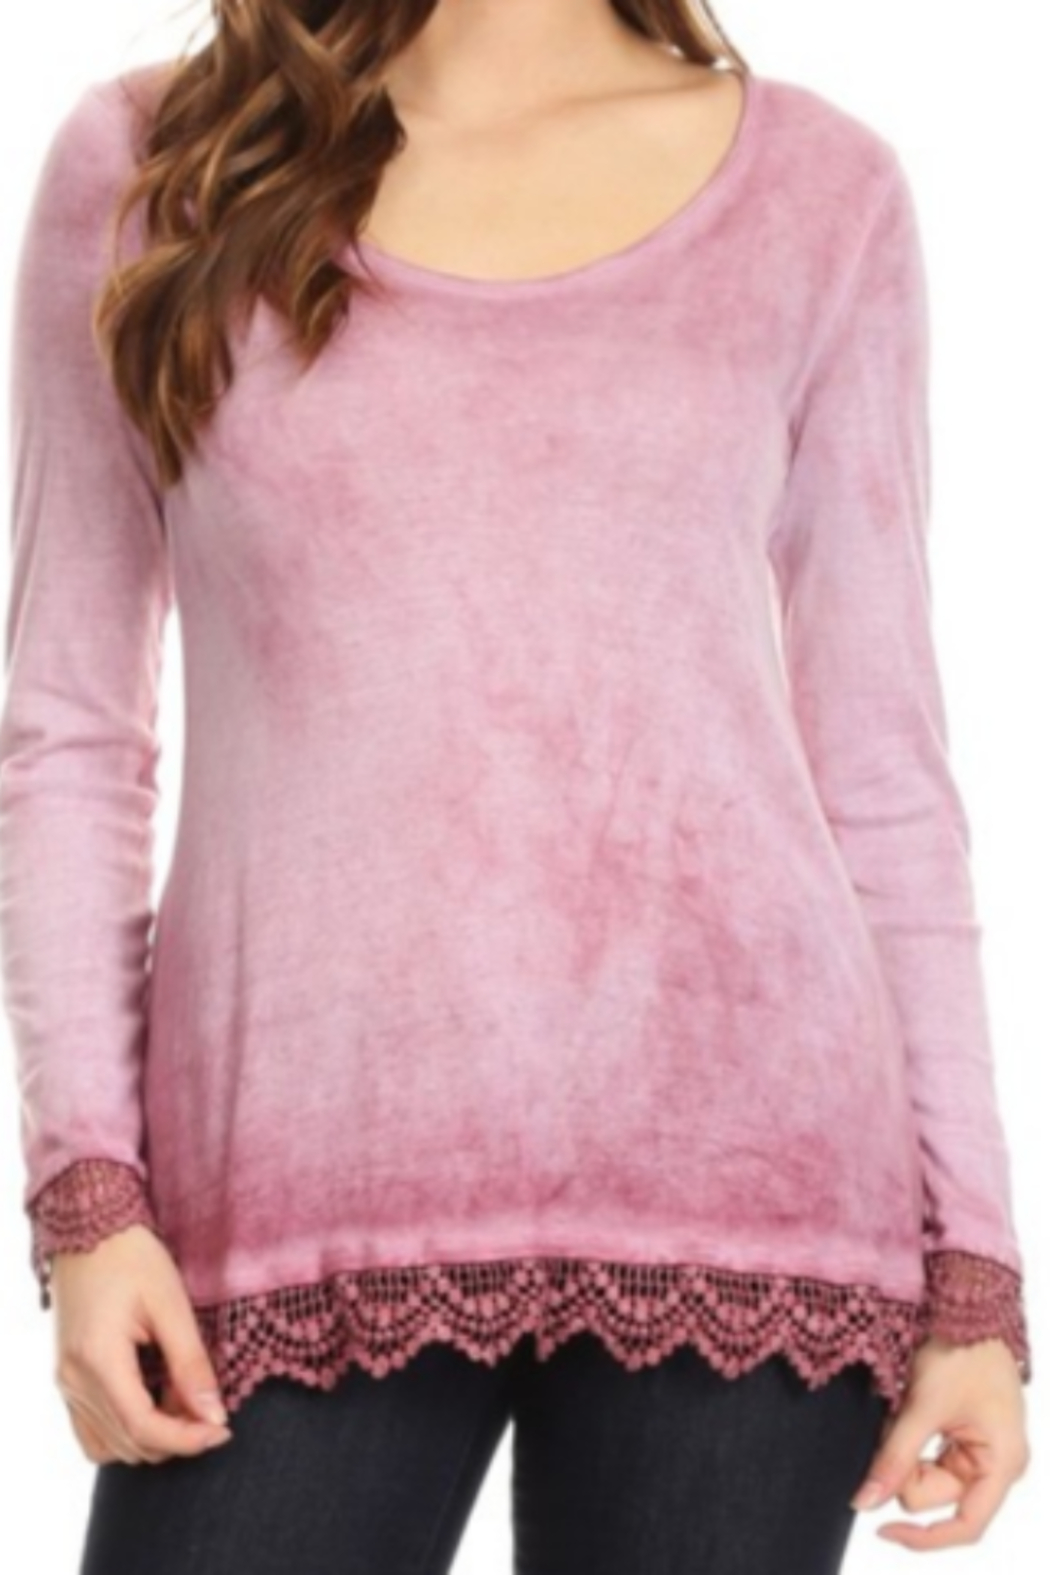 T Party Lace Trimmed Ombre Knit Top - Front Cropped Image